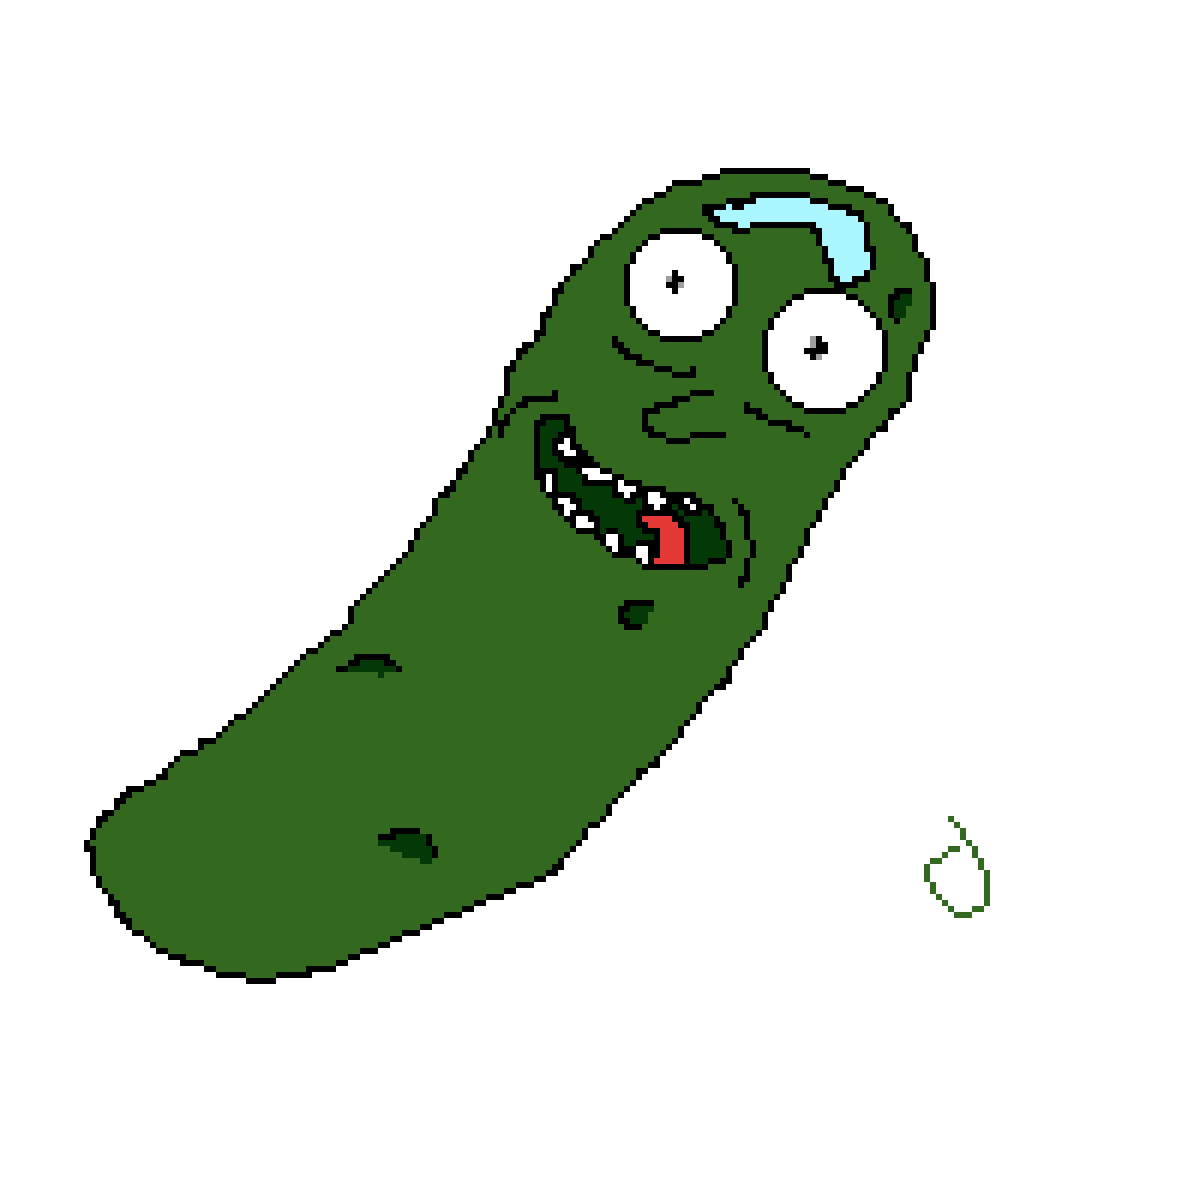 Pickle clipart drawn. Pixilart rick by wolves